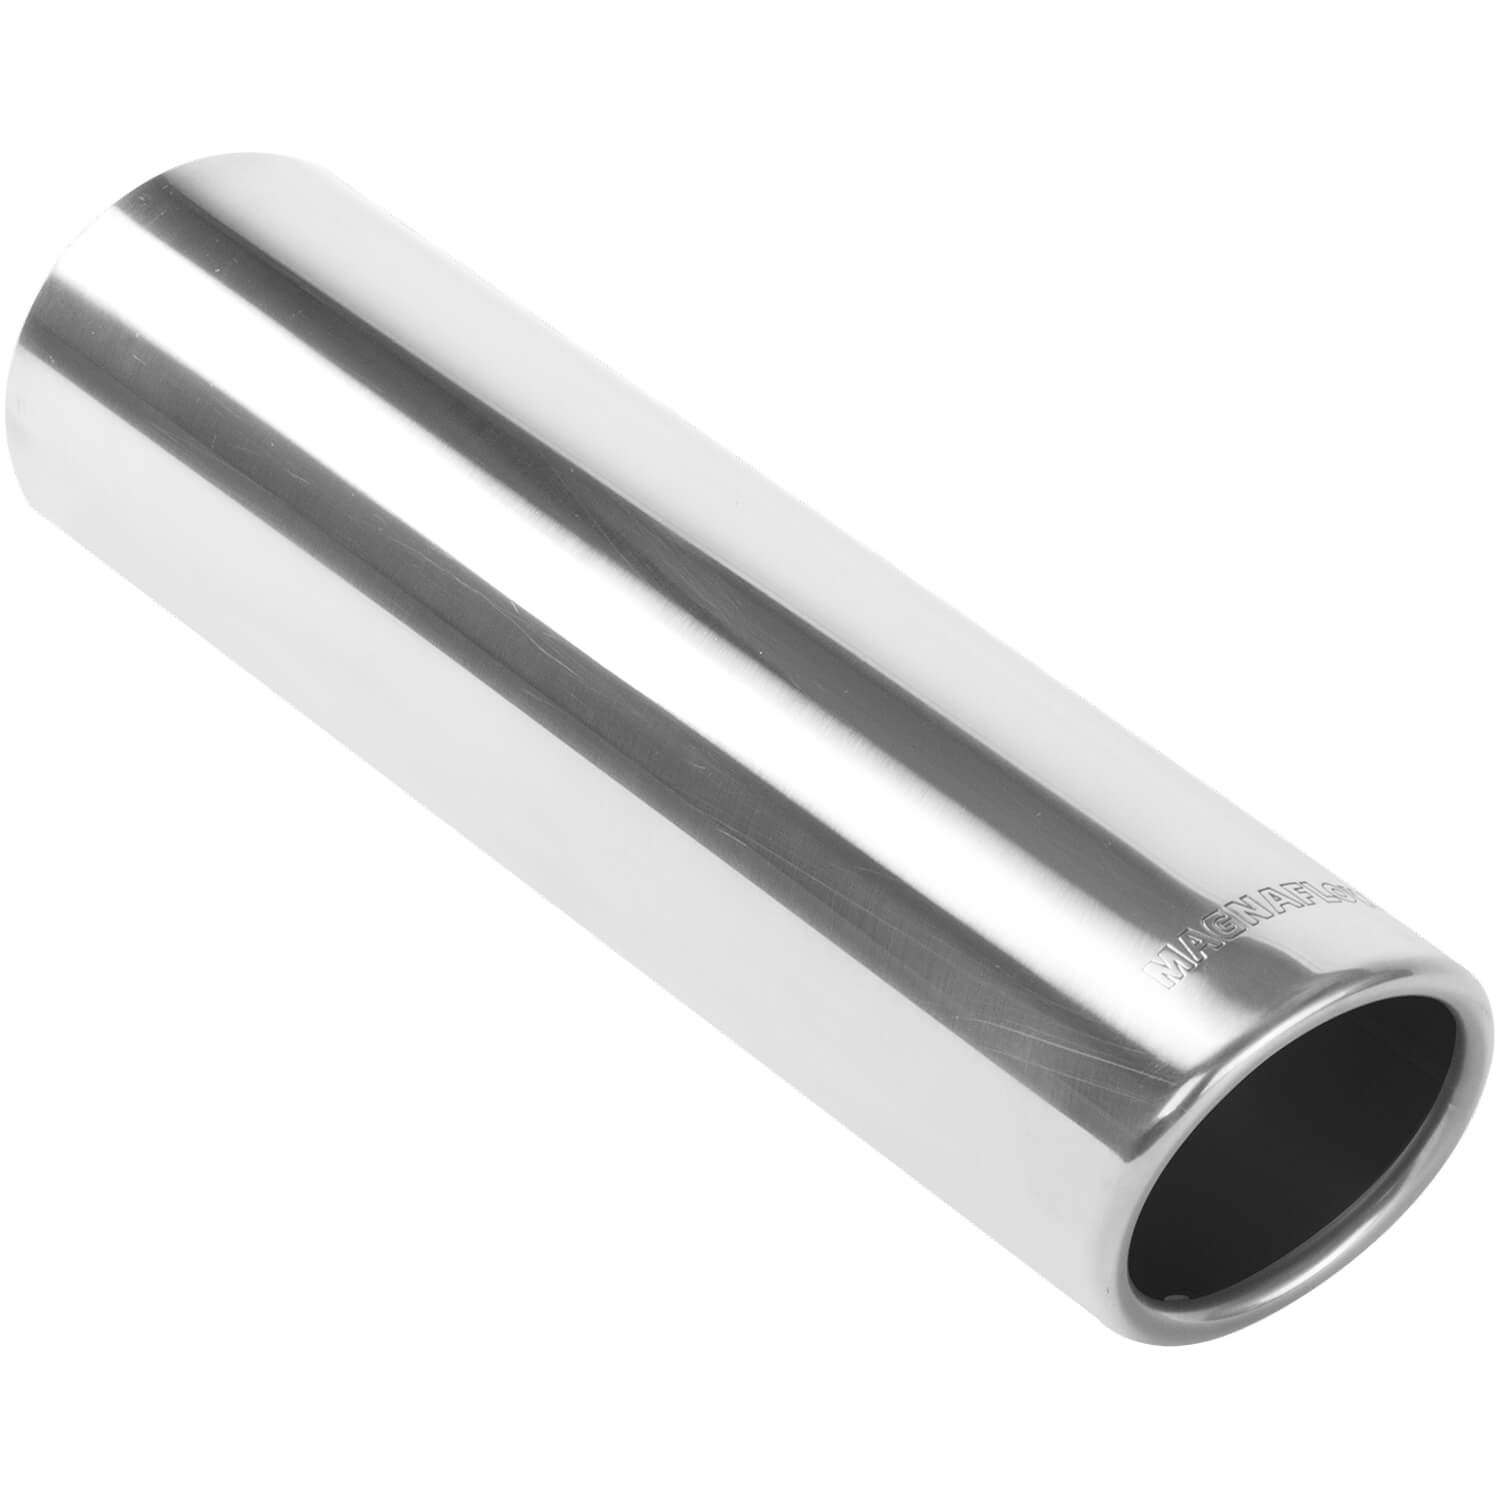 Magnaflow 35204 - Magnaflow Polished Stainless Steel Weld-On Single Exhaust Tips